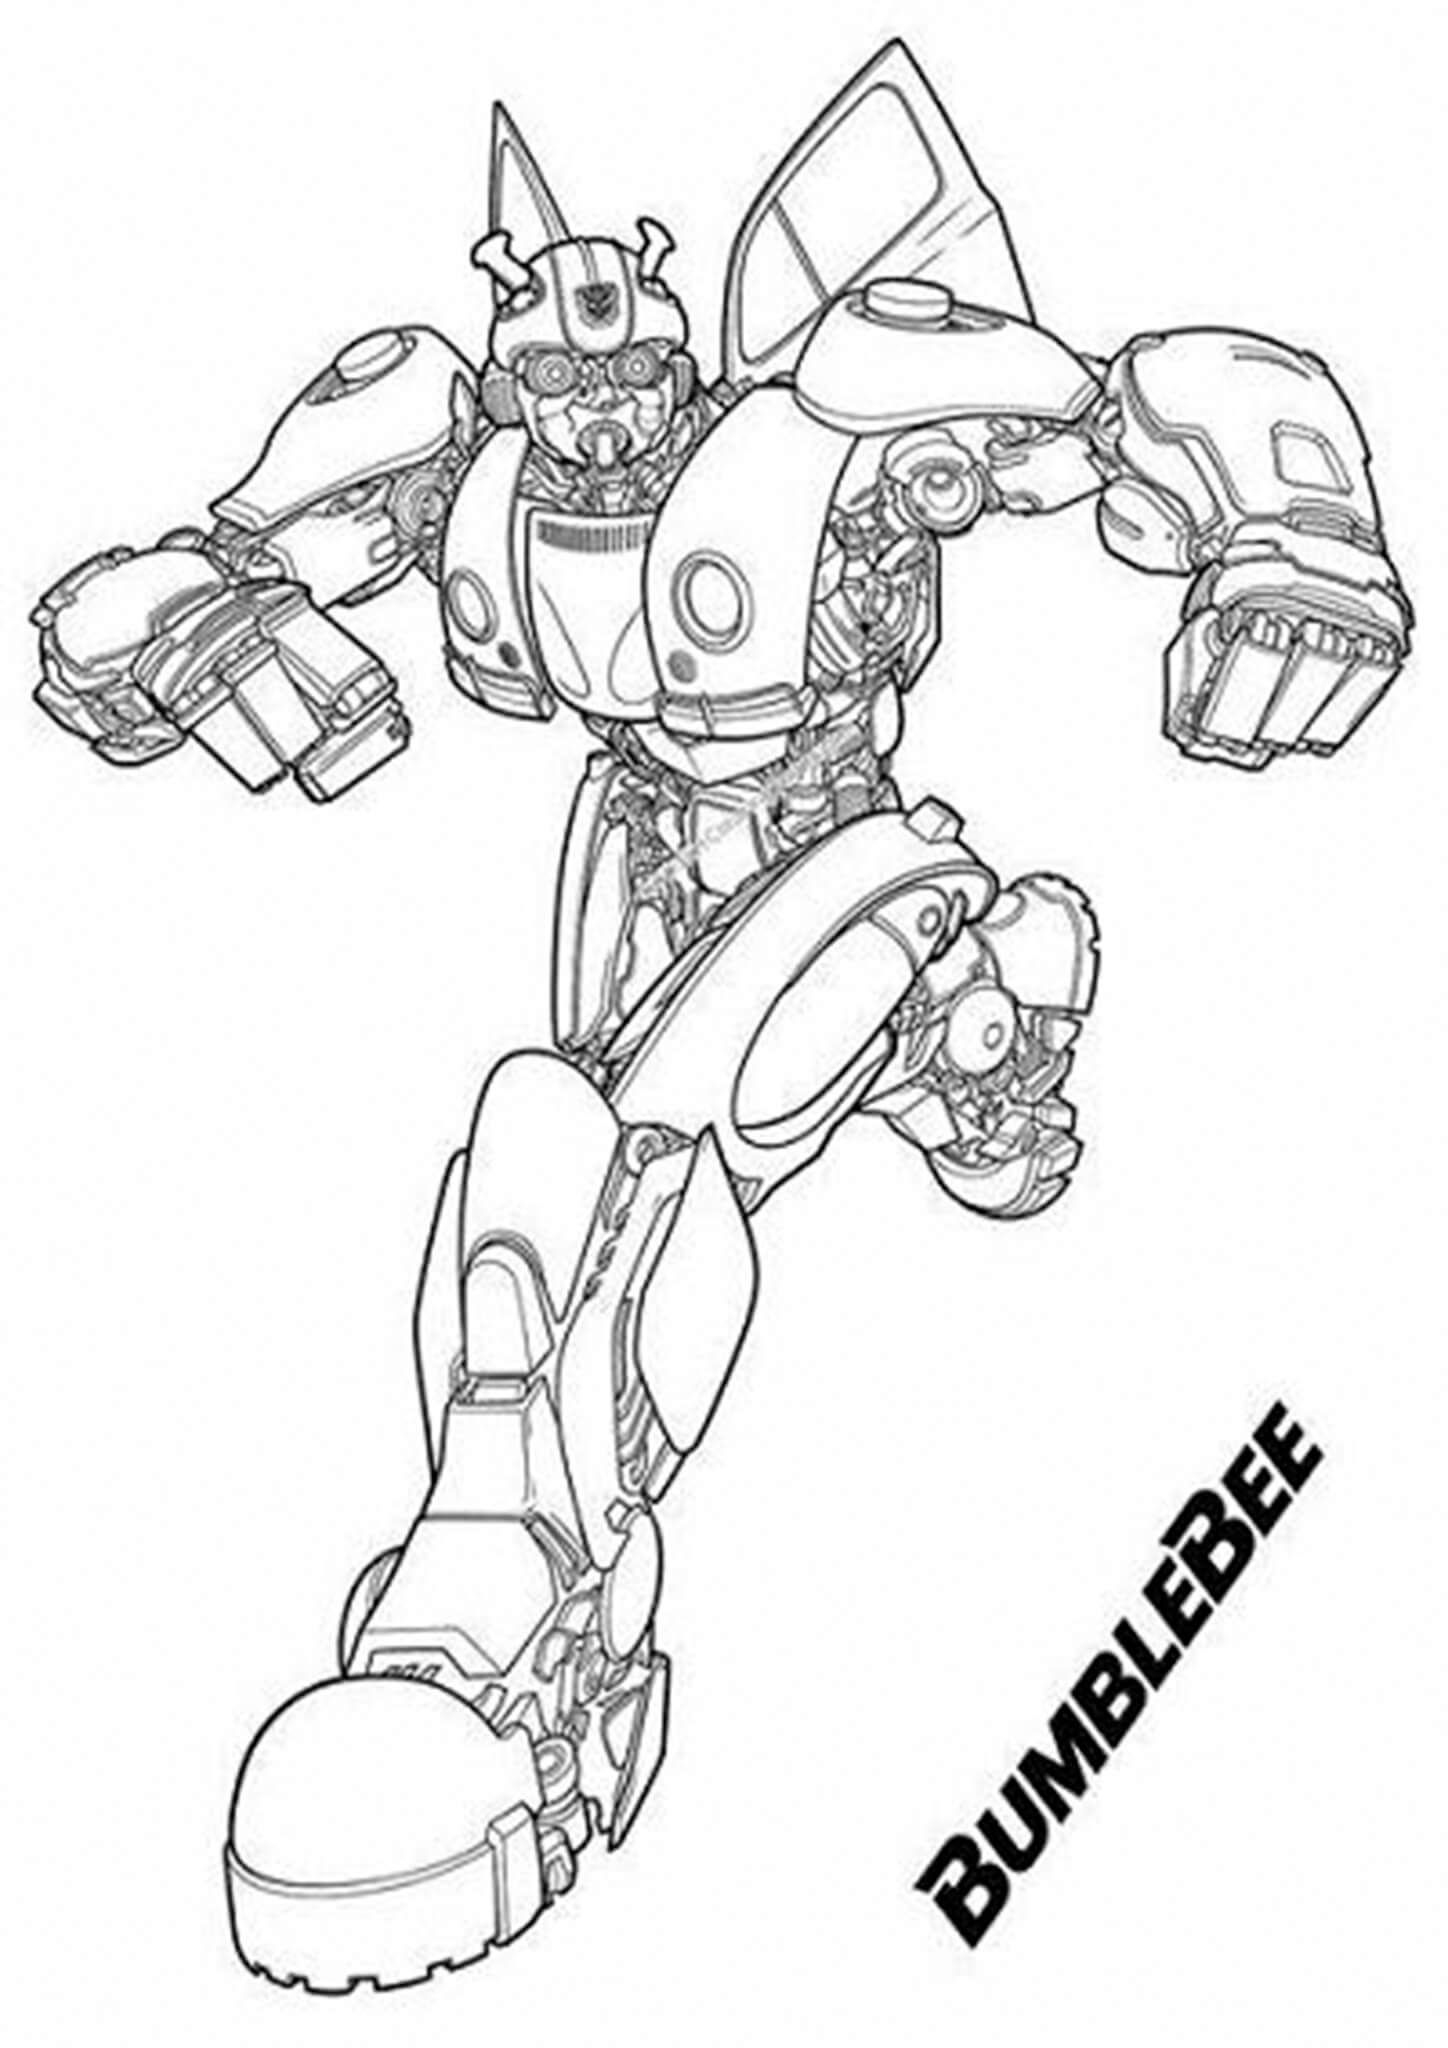 Transformer Bumble Bee Coloring Page Unique Bumblebee